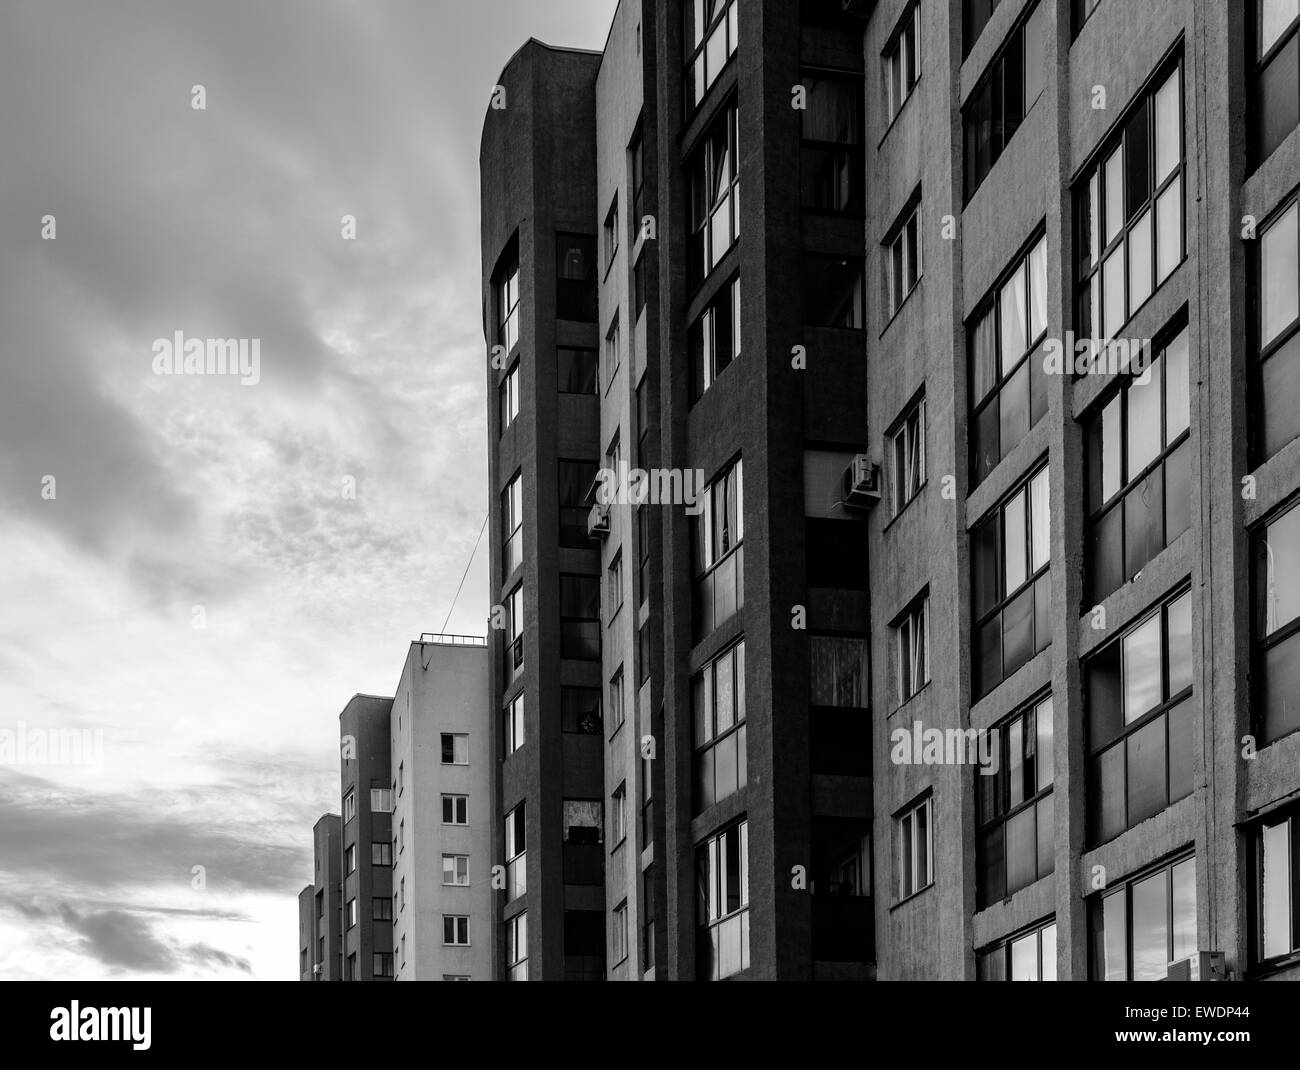 Big housing apartments with a sunset sky in the background - Stock Image